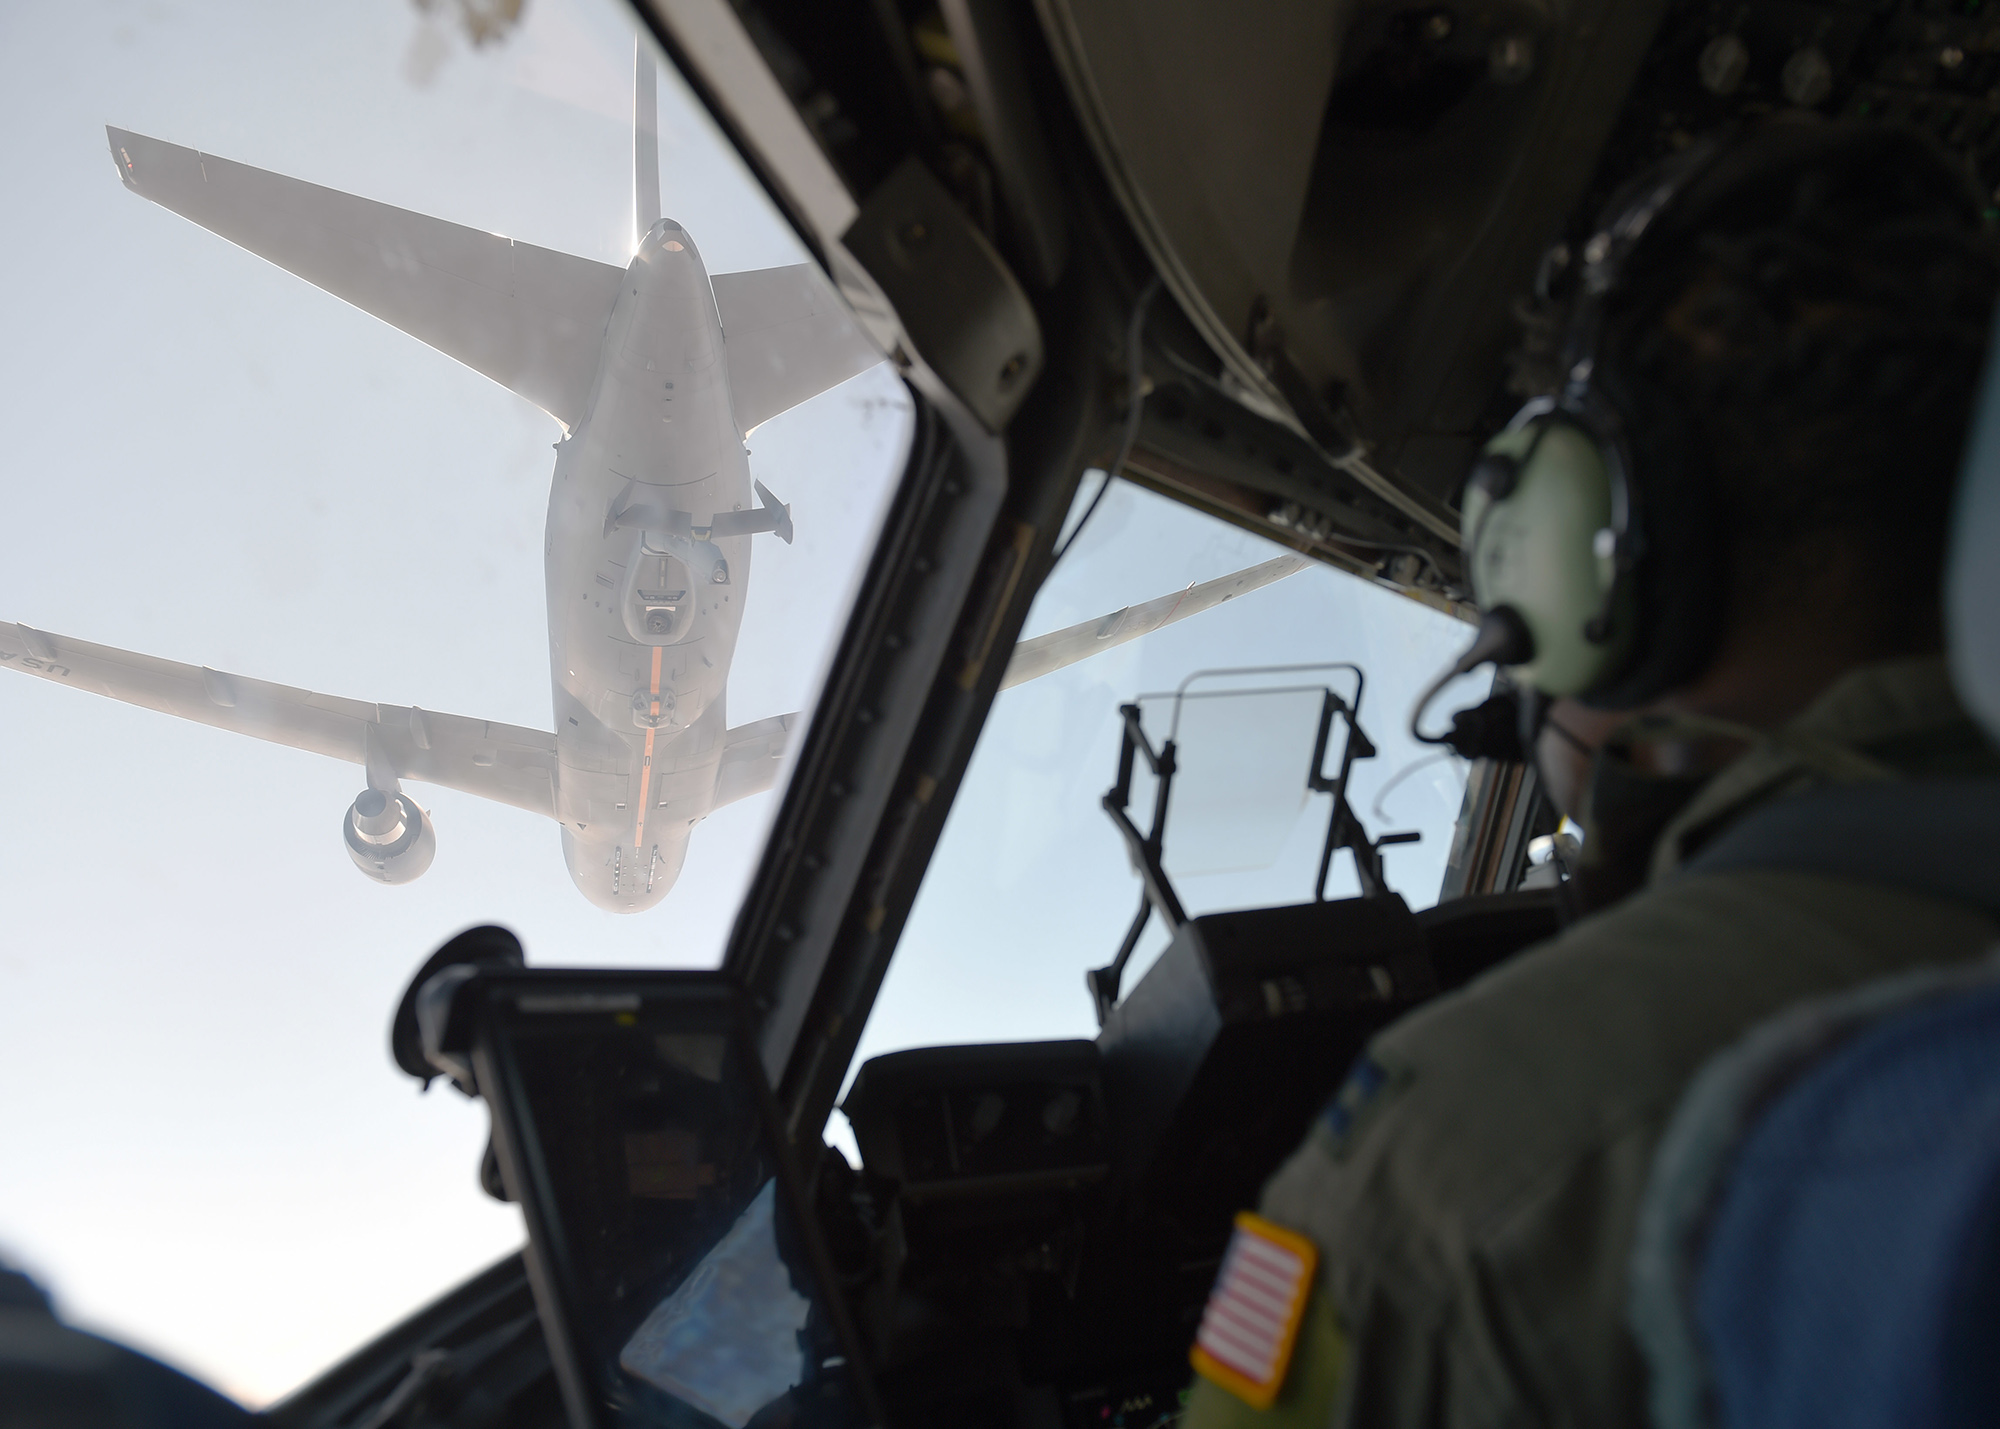 Capt. Edmond Duvall, 7th Airlift Squadron pilot, prepares to aerial refuel a C-17 Globemaster III from a KC-46 Pegasus from Fairchild Air Force Base, Wash., over Washington state, Aug. 5, 2020. The KC-46 Pegasus is the Air Force's newest refueling aircraft and many pilots are still learning and being certified on how to conduct refueling. (Airman 1st Class Mikayla Heineck/Air Force)